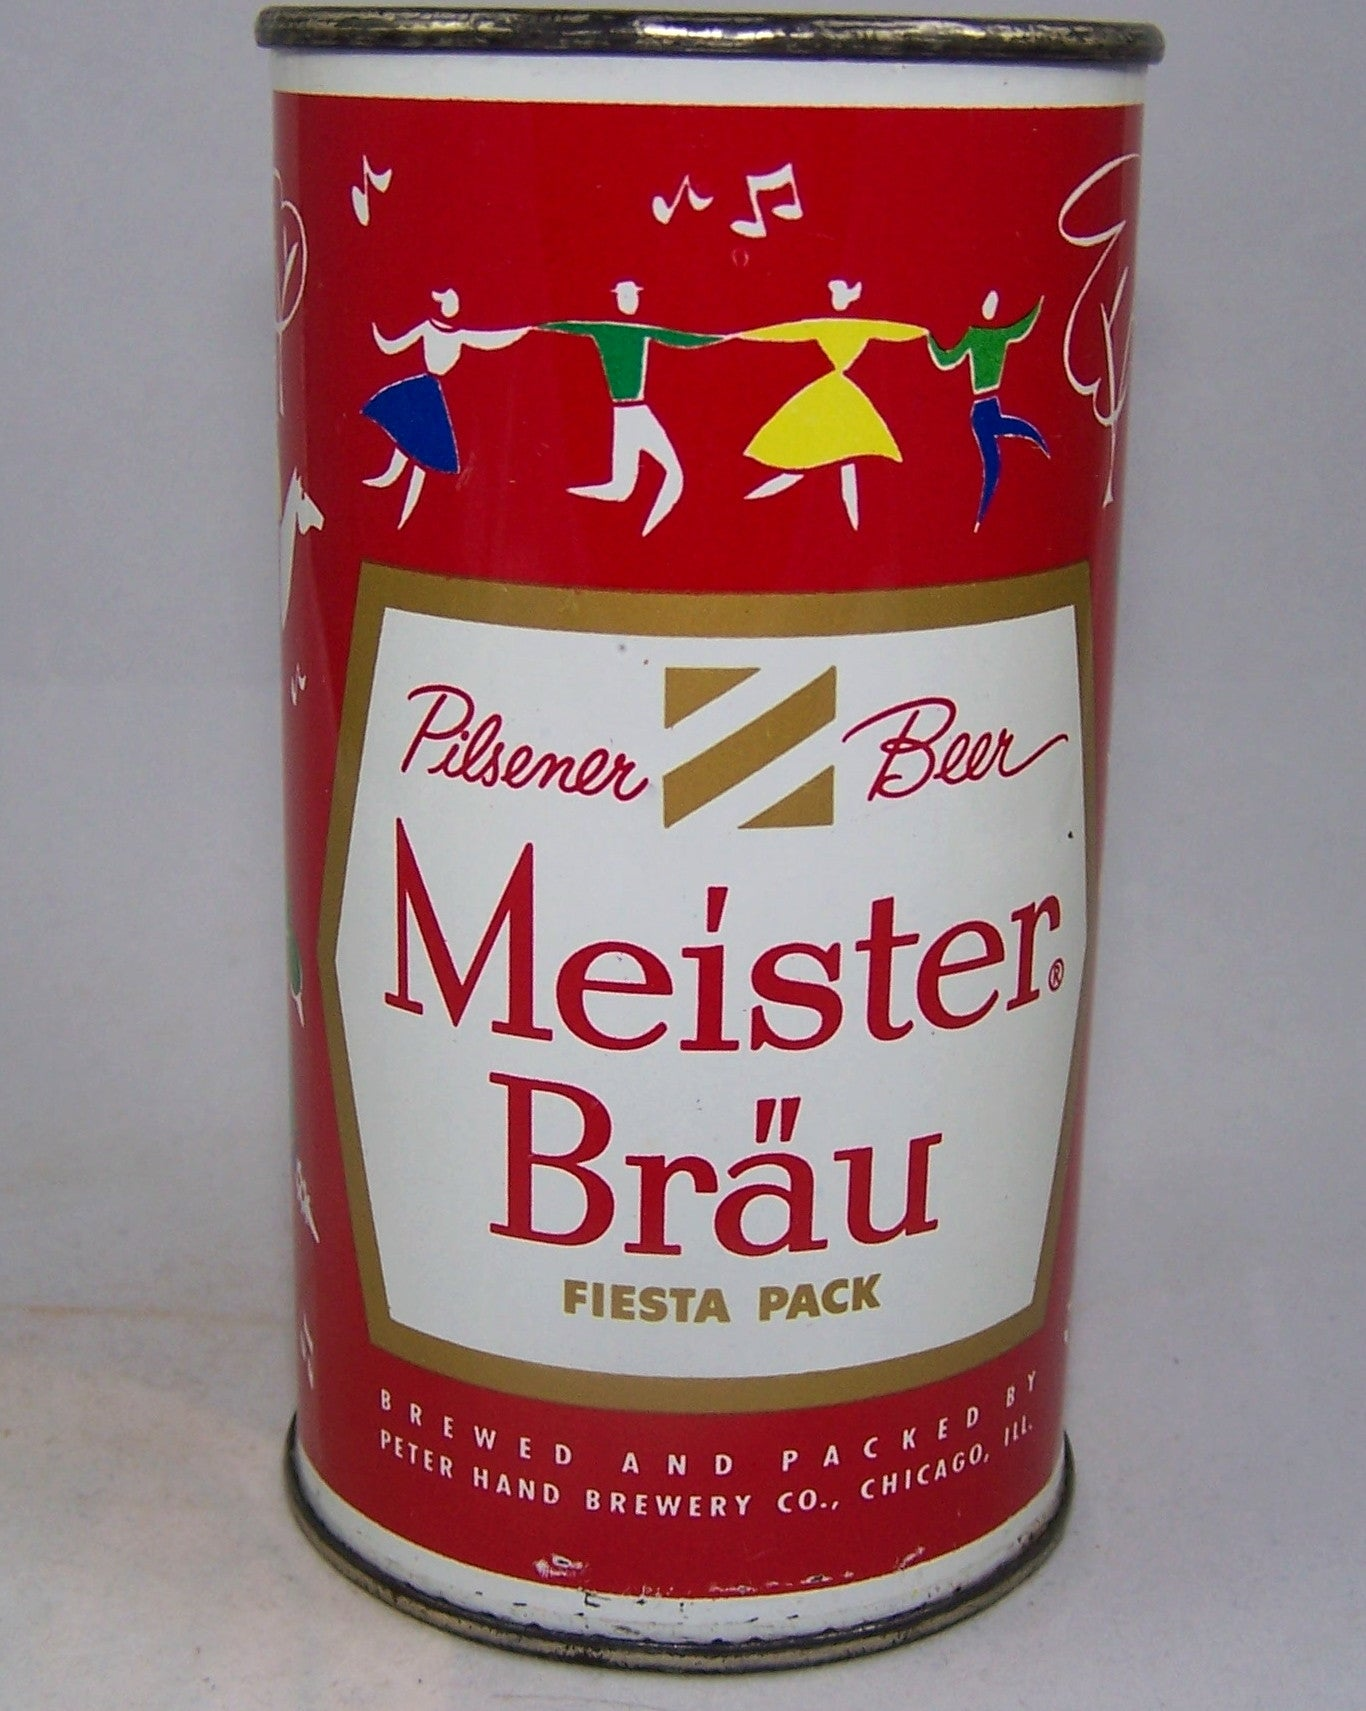 Meister Brau Beer, Country Can, (Scandinavia) USBC 97-11, Grade 1/1+Sold 10/23/15